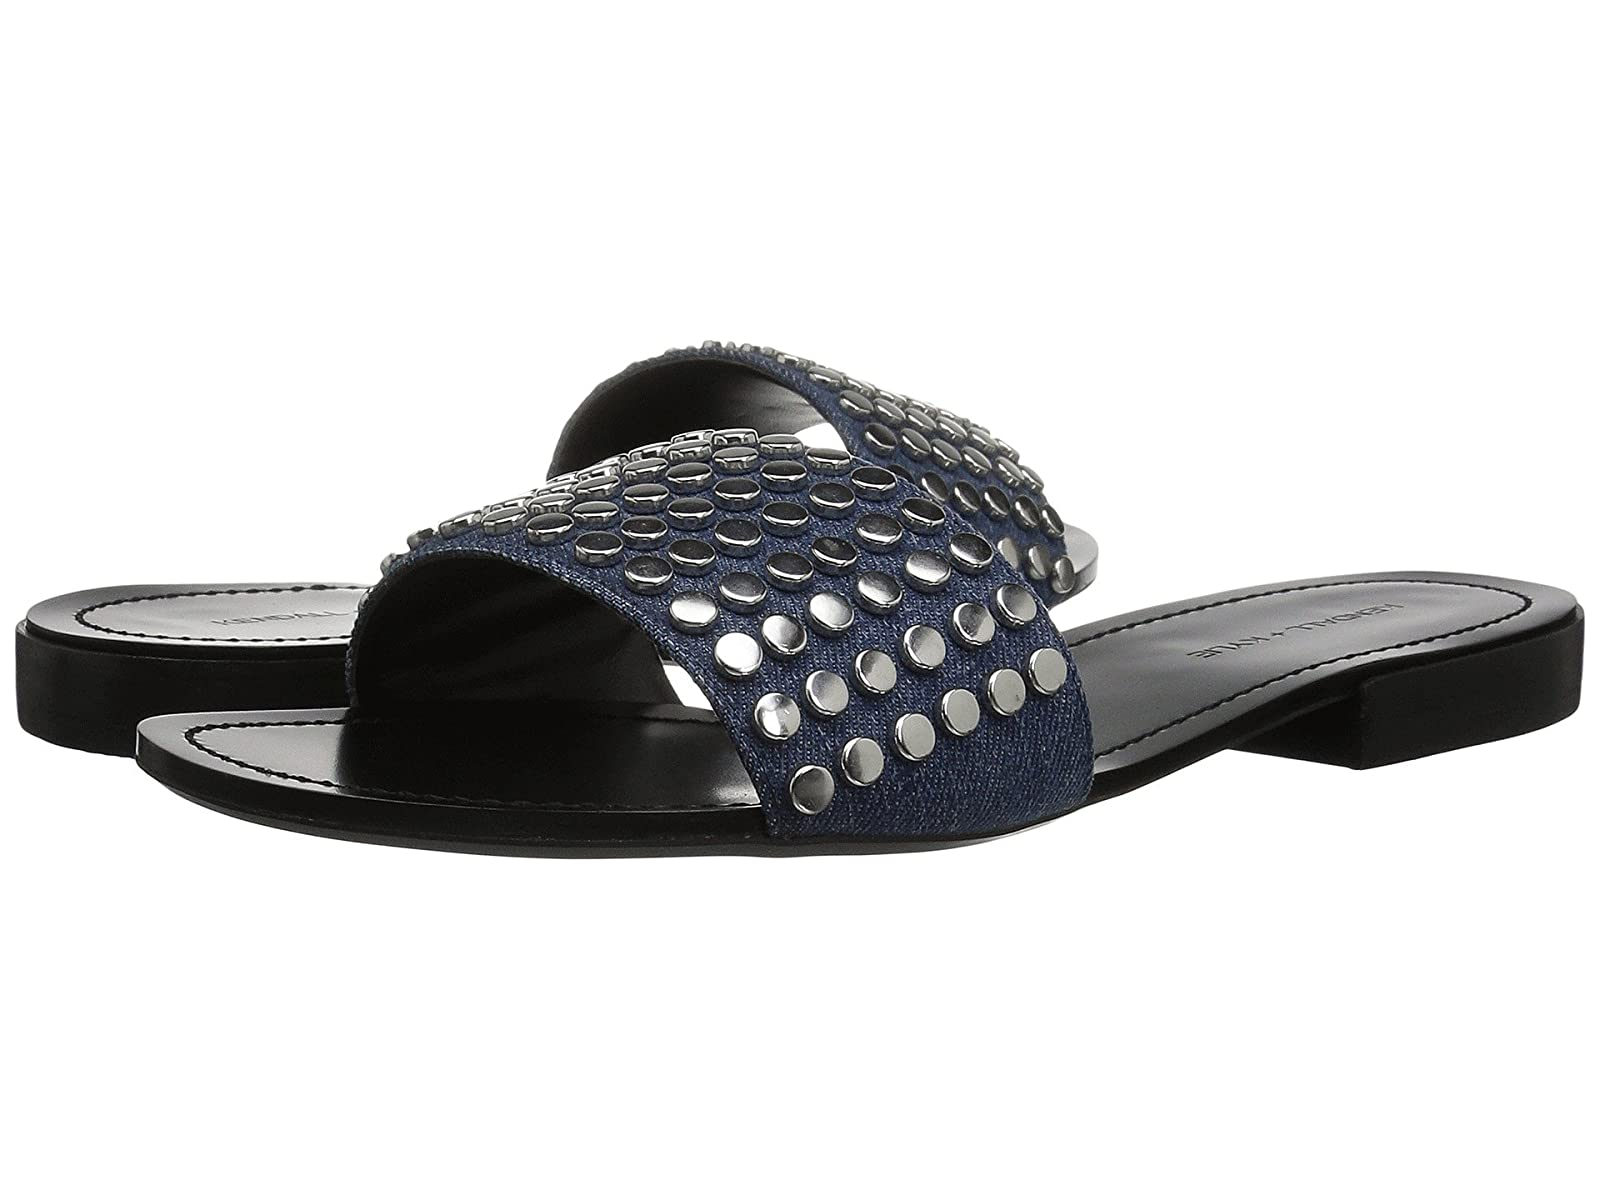 KENDALL + KYLIE Kelsy 4Atmospheric grades have affordable shoes